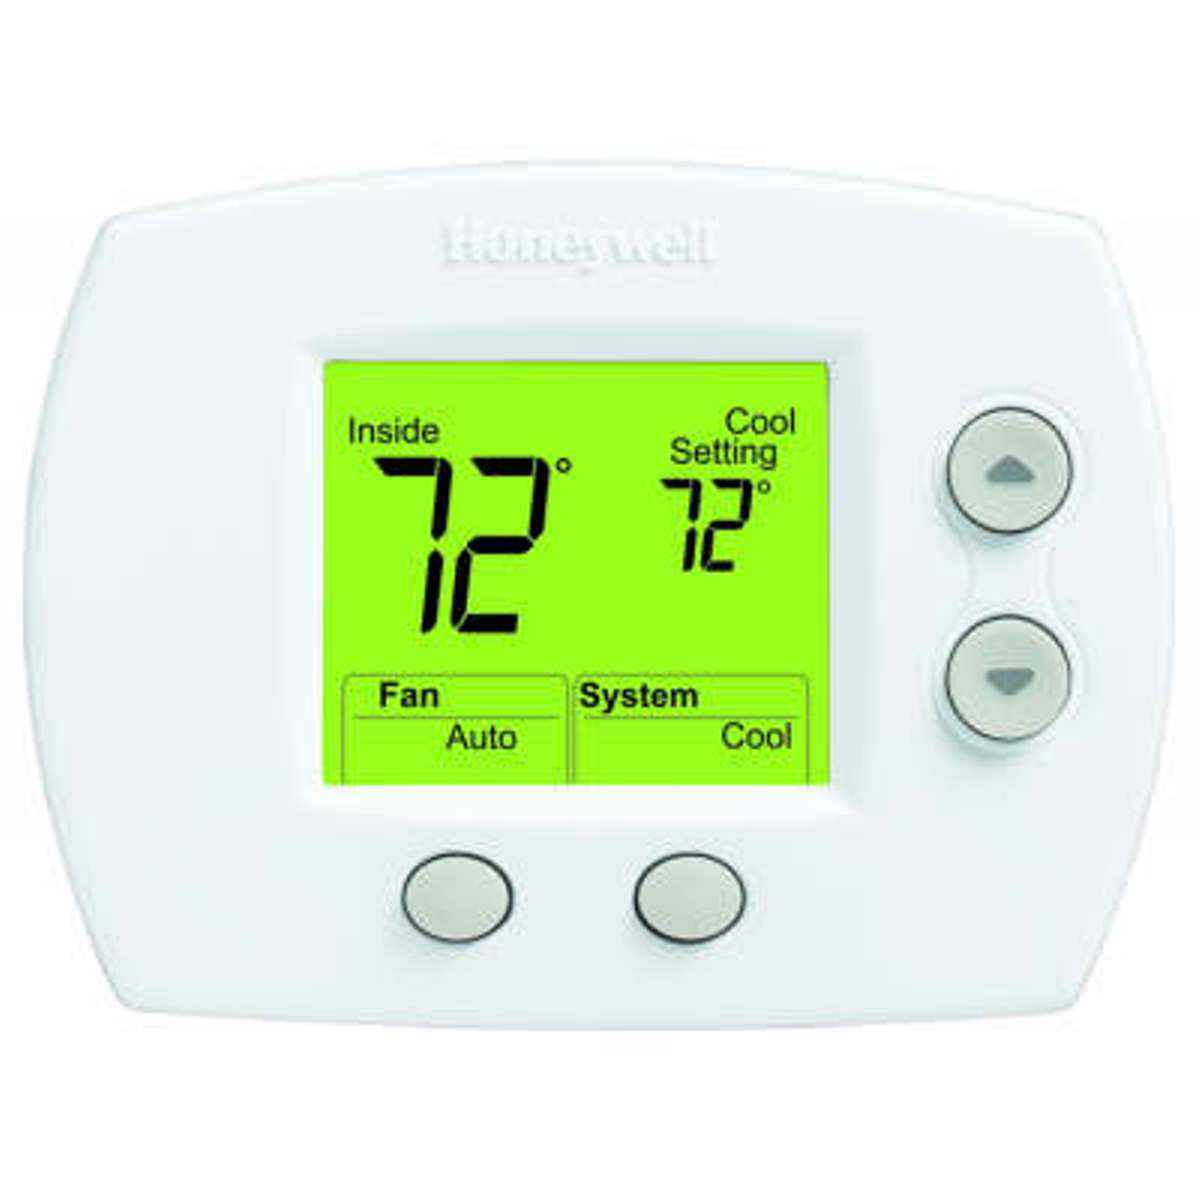 Honeywell TH5110D1022 Digital Non Programmable Thermostats